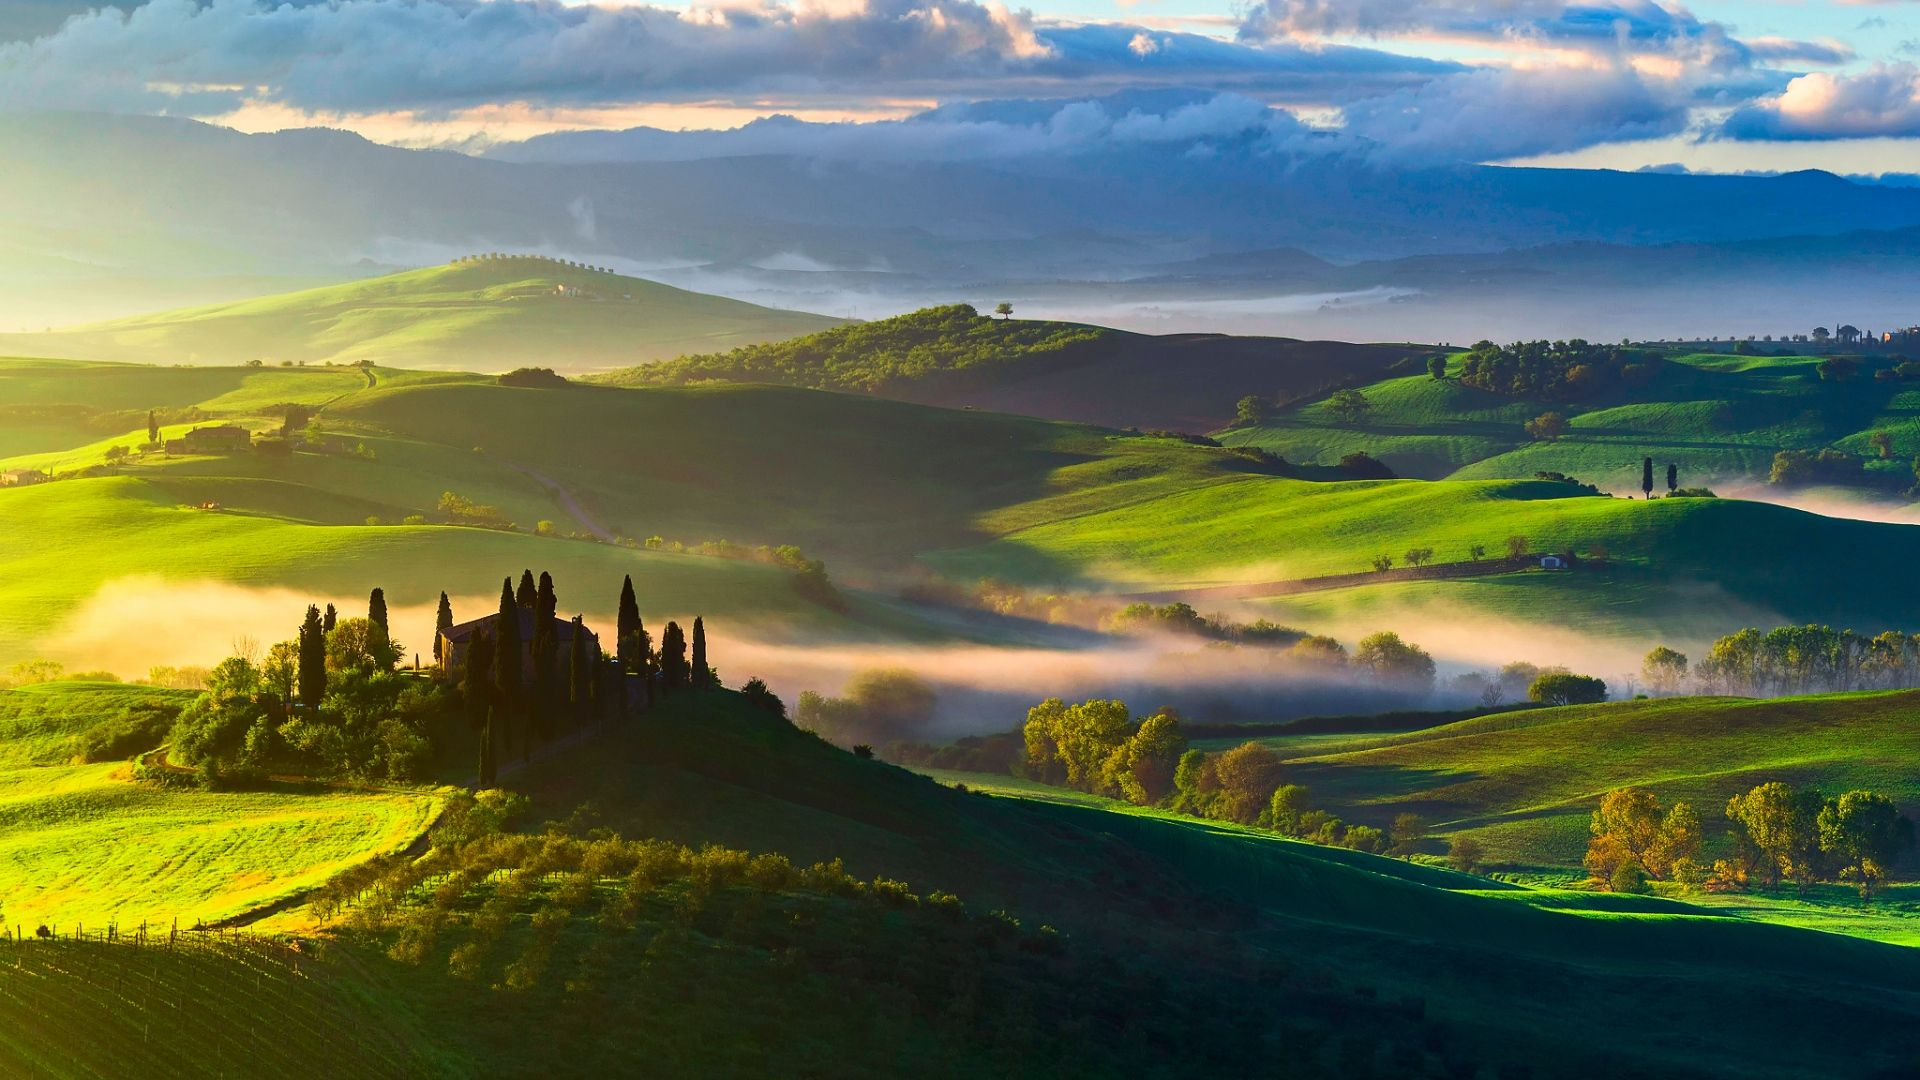 Full HD 1080p Italy Wallpapers HD, Desktop Backgrounds 1920x1080 | Adorable Wallpapers in 2019 ...